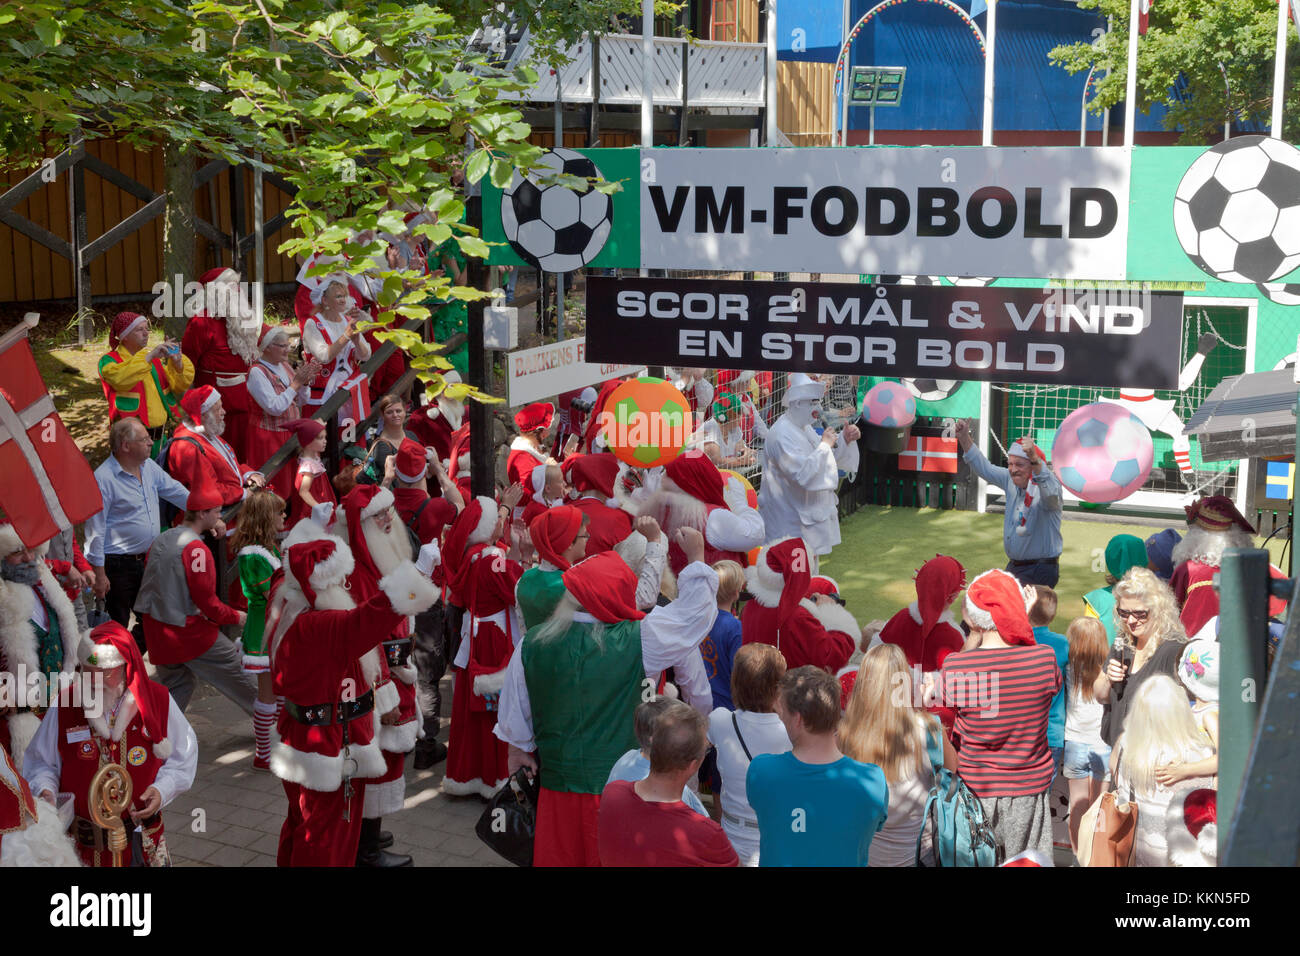 Football competition between Santas at the Santa Claus World Congress in Denmark at Bakken, the amusement park in - Stock Image